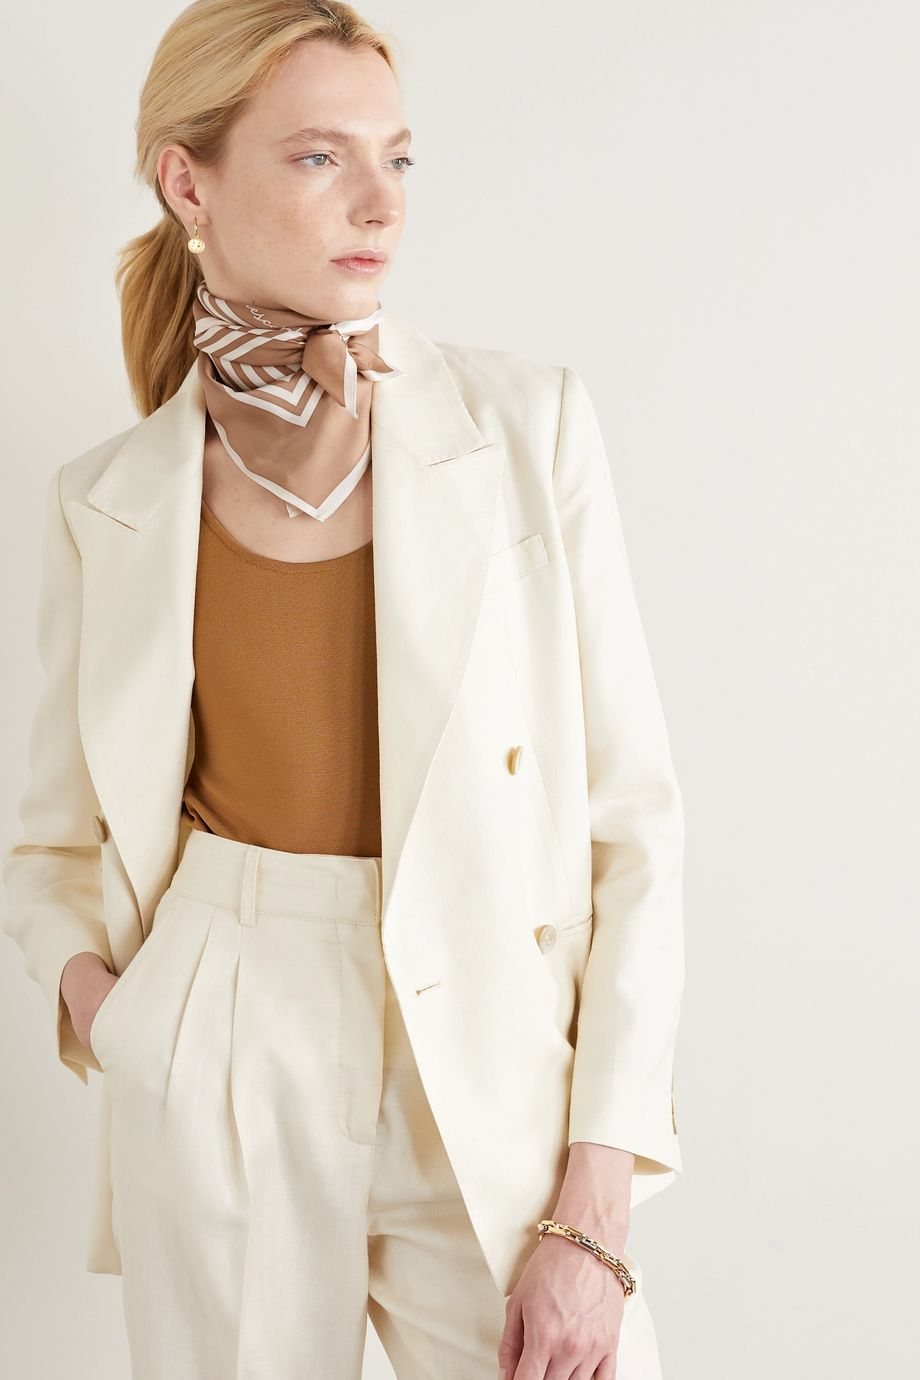 lescarf No. 9 striped silk-twill scarf